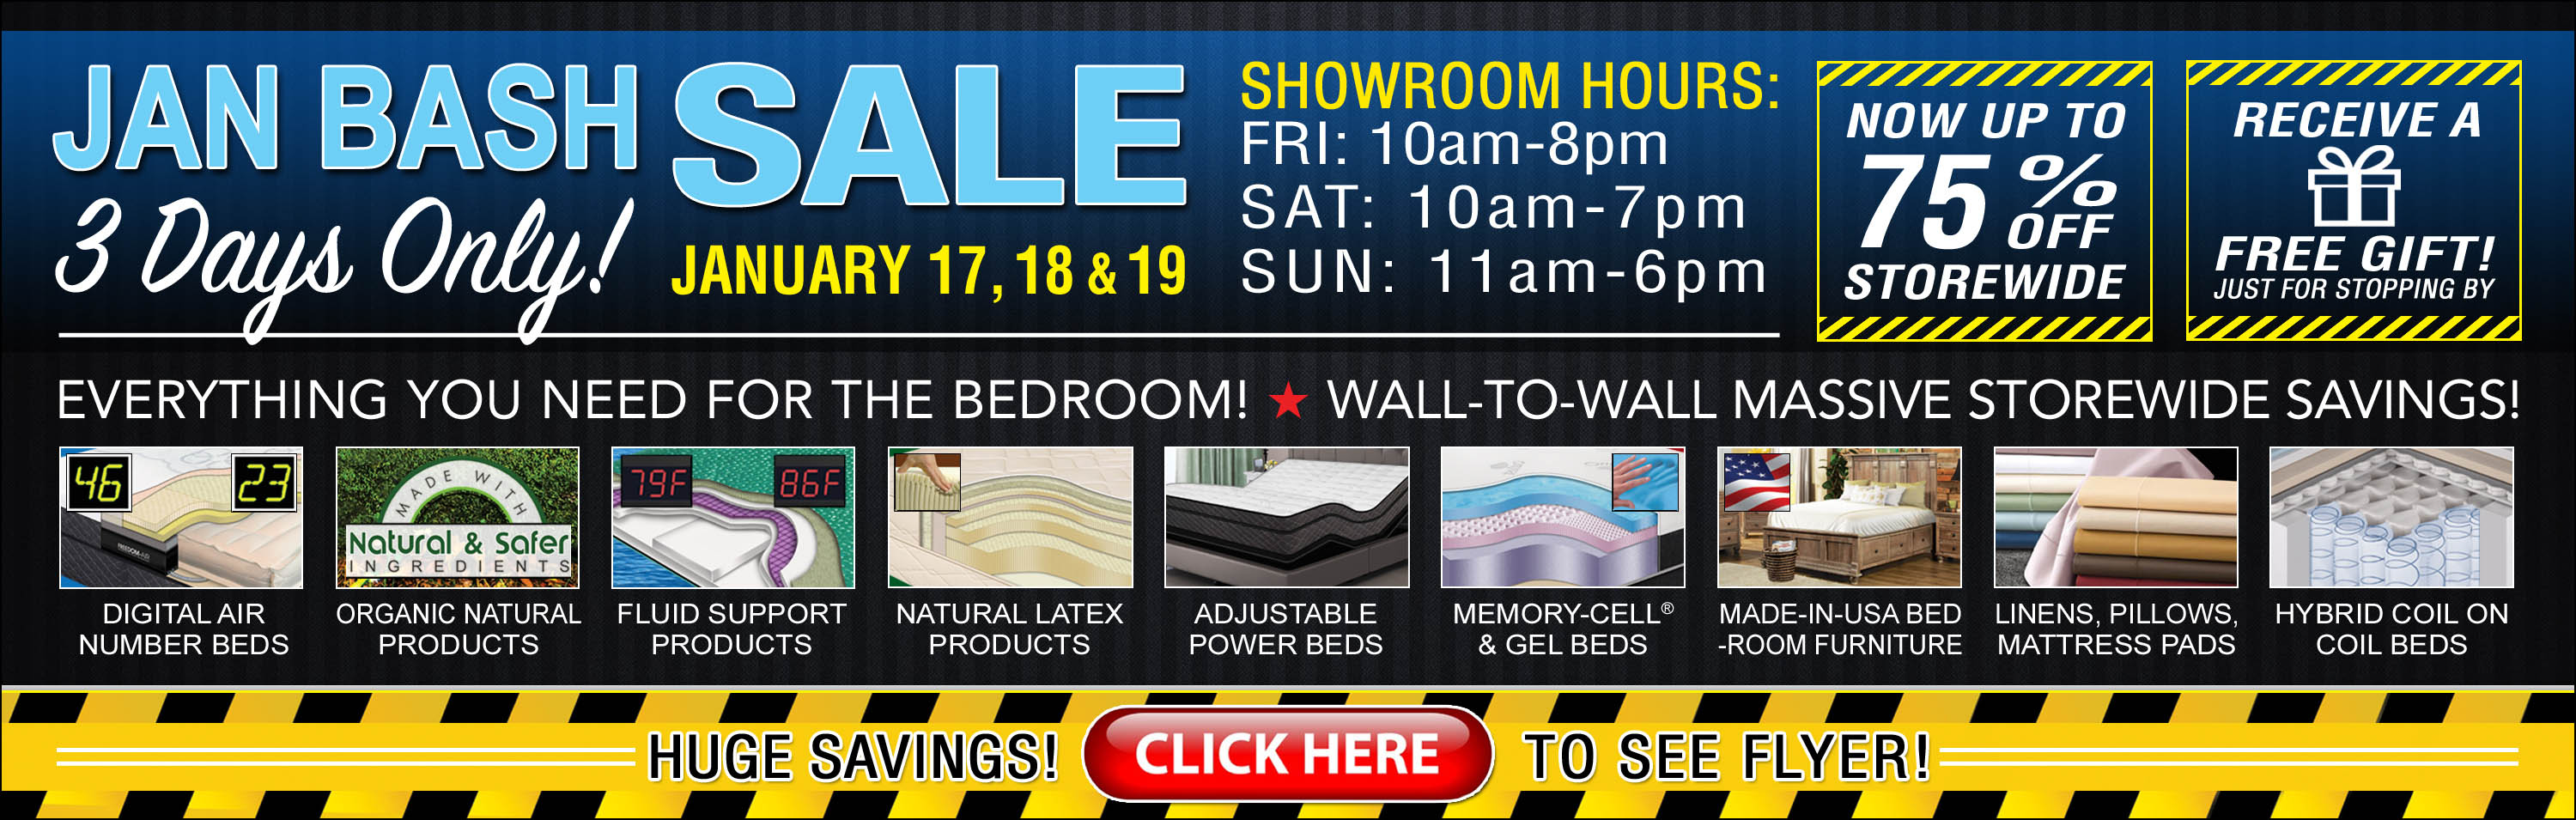 InnoMax Jan Bash Sale Going On Now Stop By To Save Big On Everything You Need For The Bedroom Slide 1